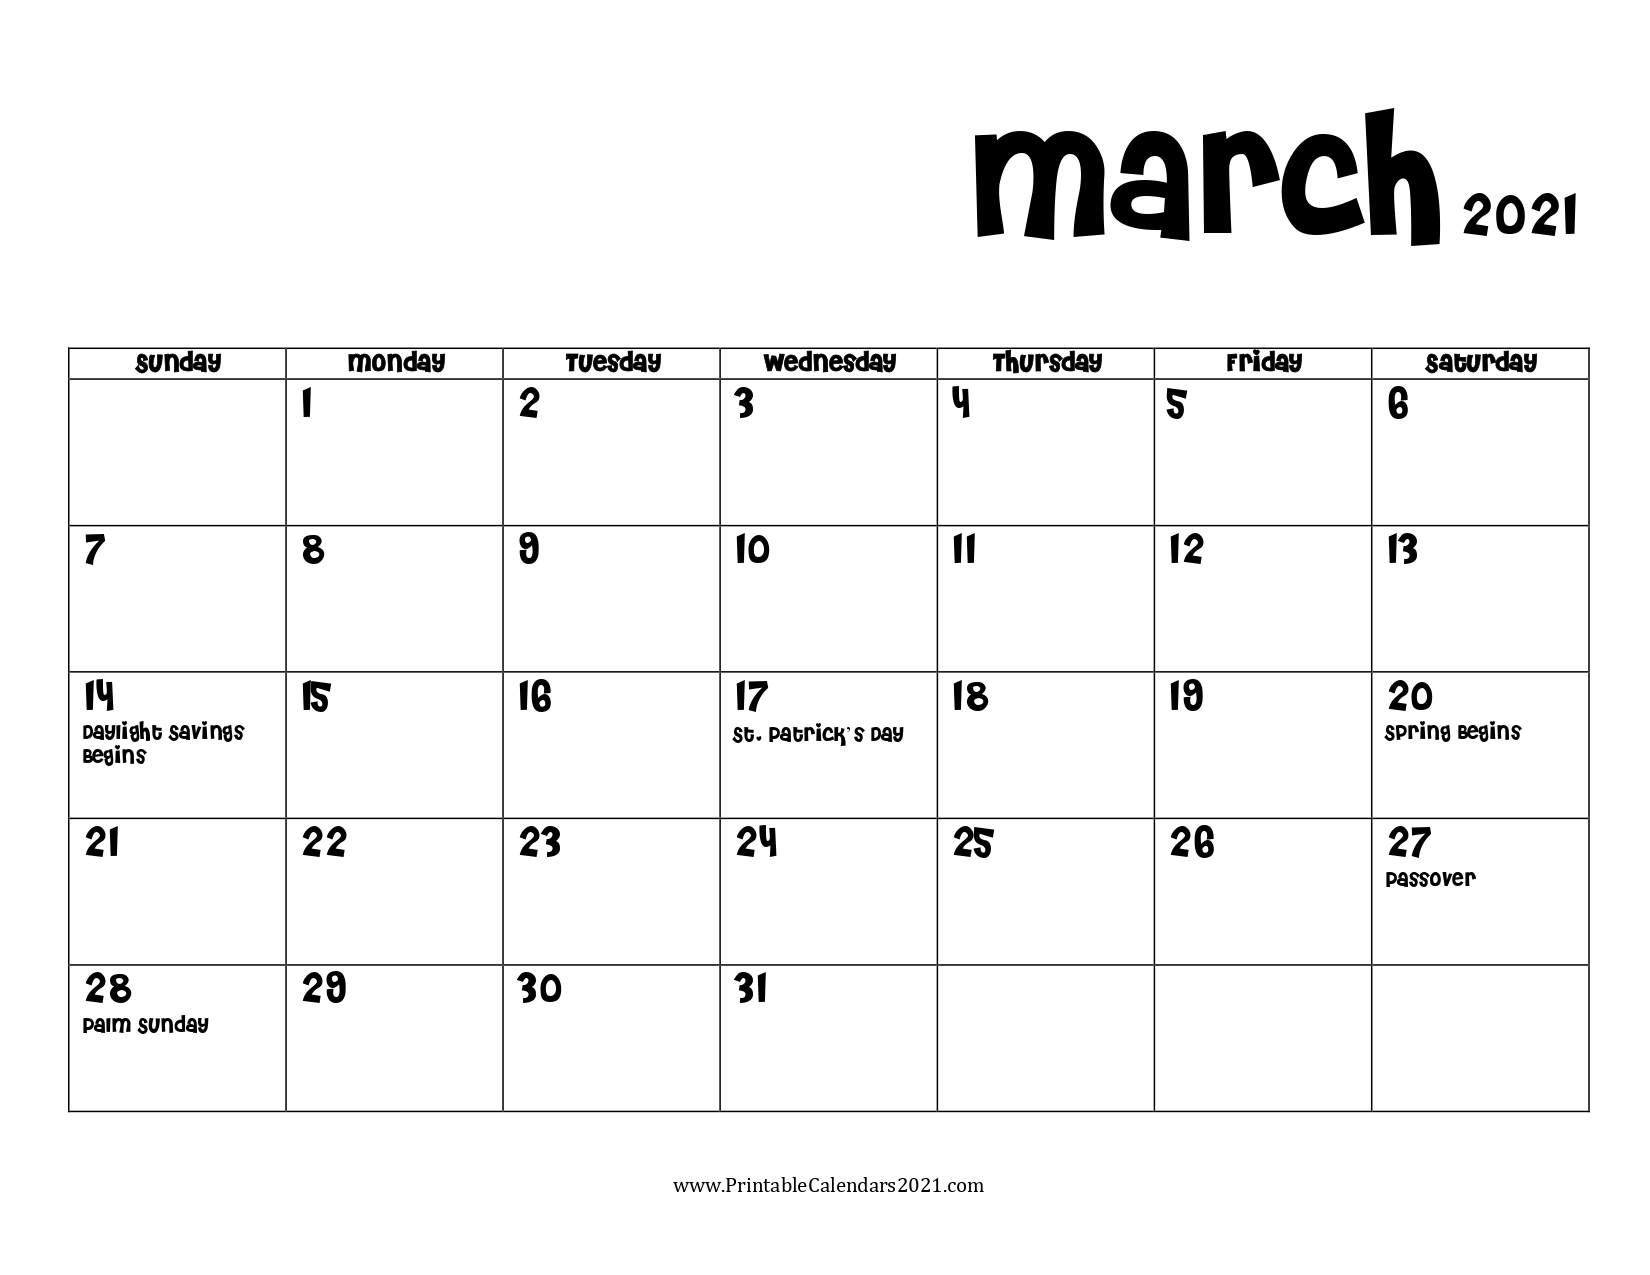 68+ Free March 2021 Calendar Printable With Holidays